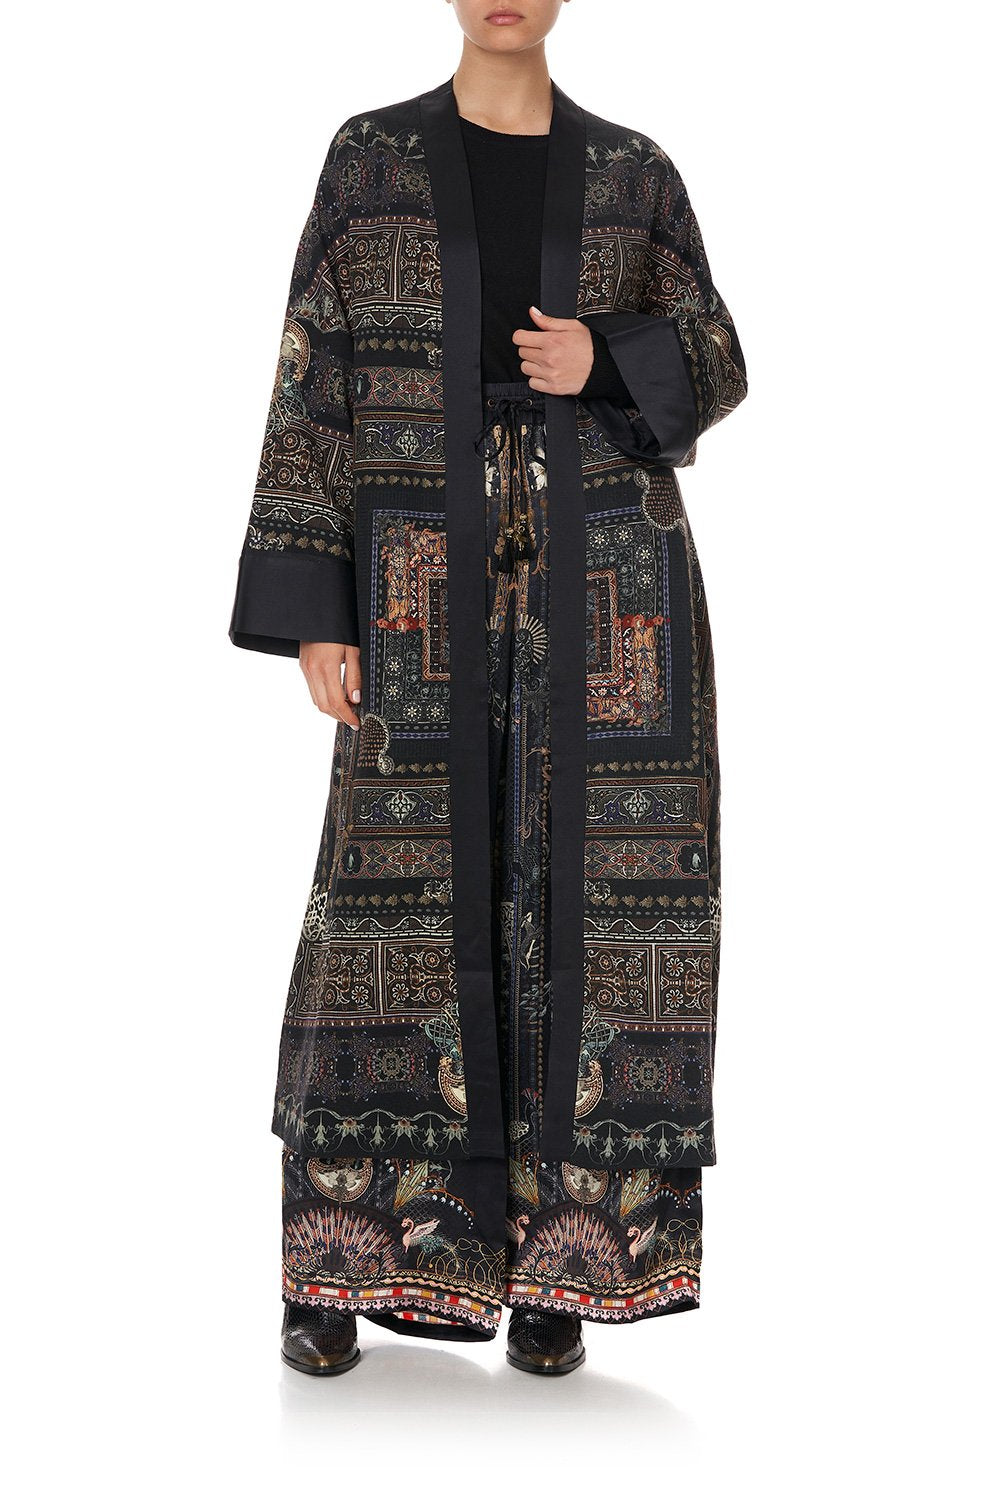 COAT WITH CUFF BANDS SON OF SEVEN QUEENS